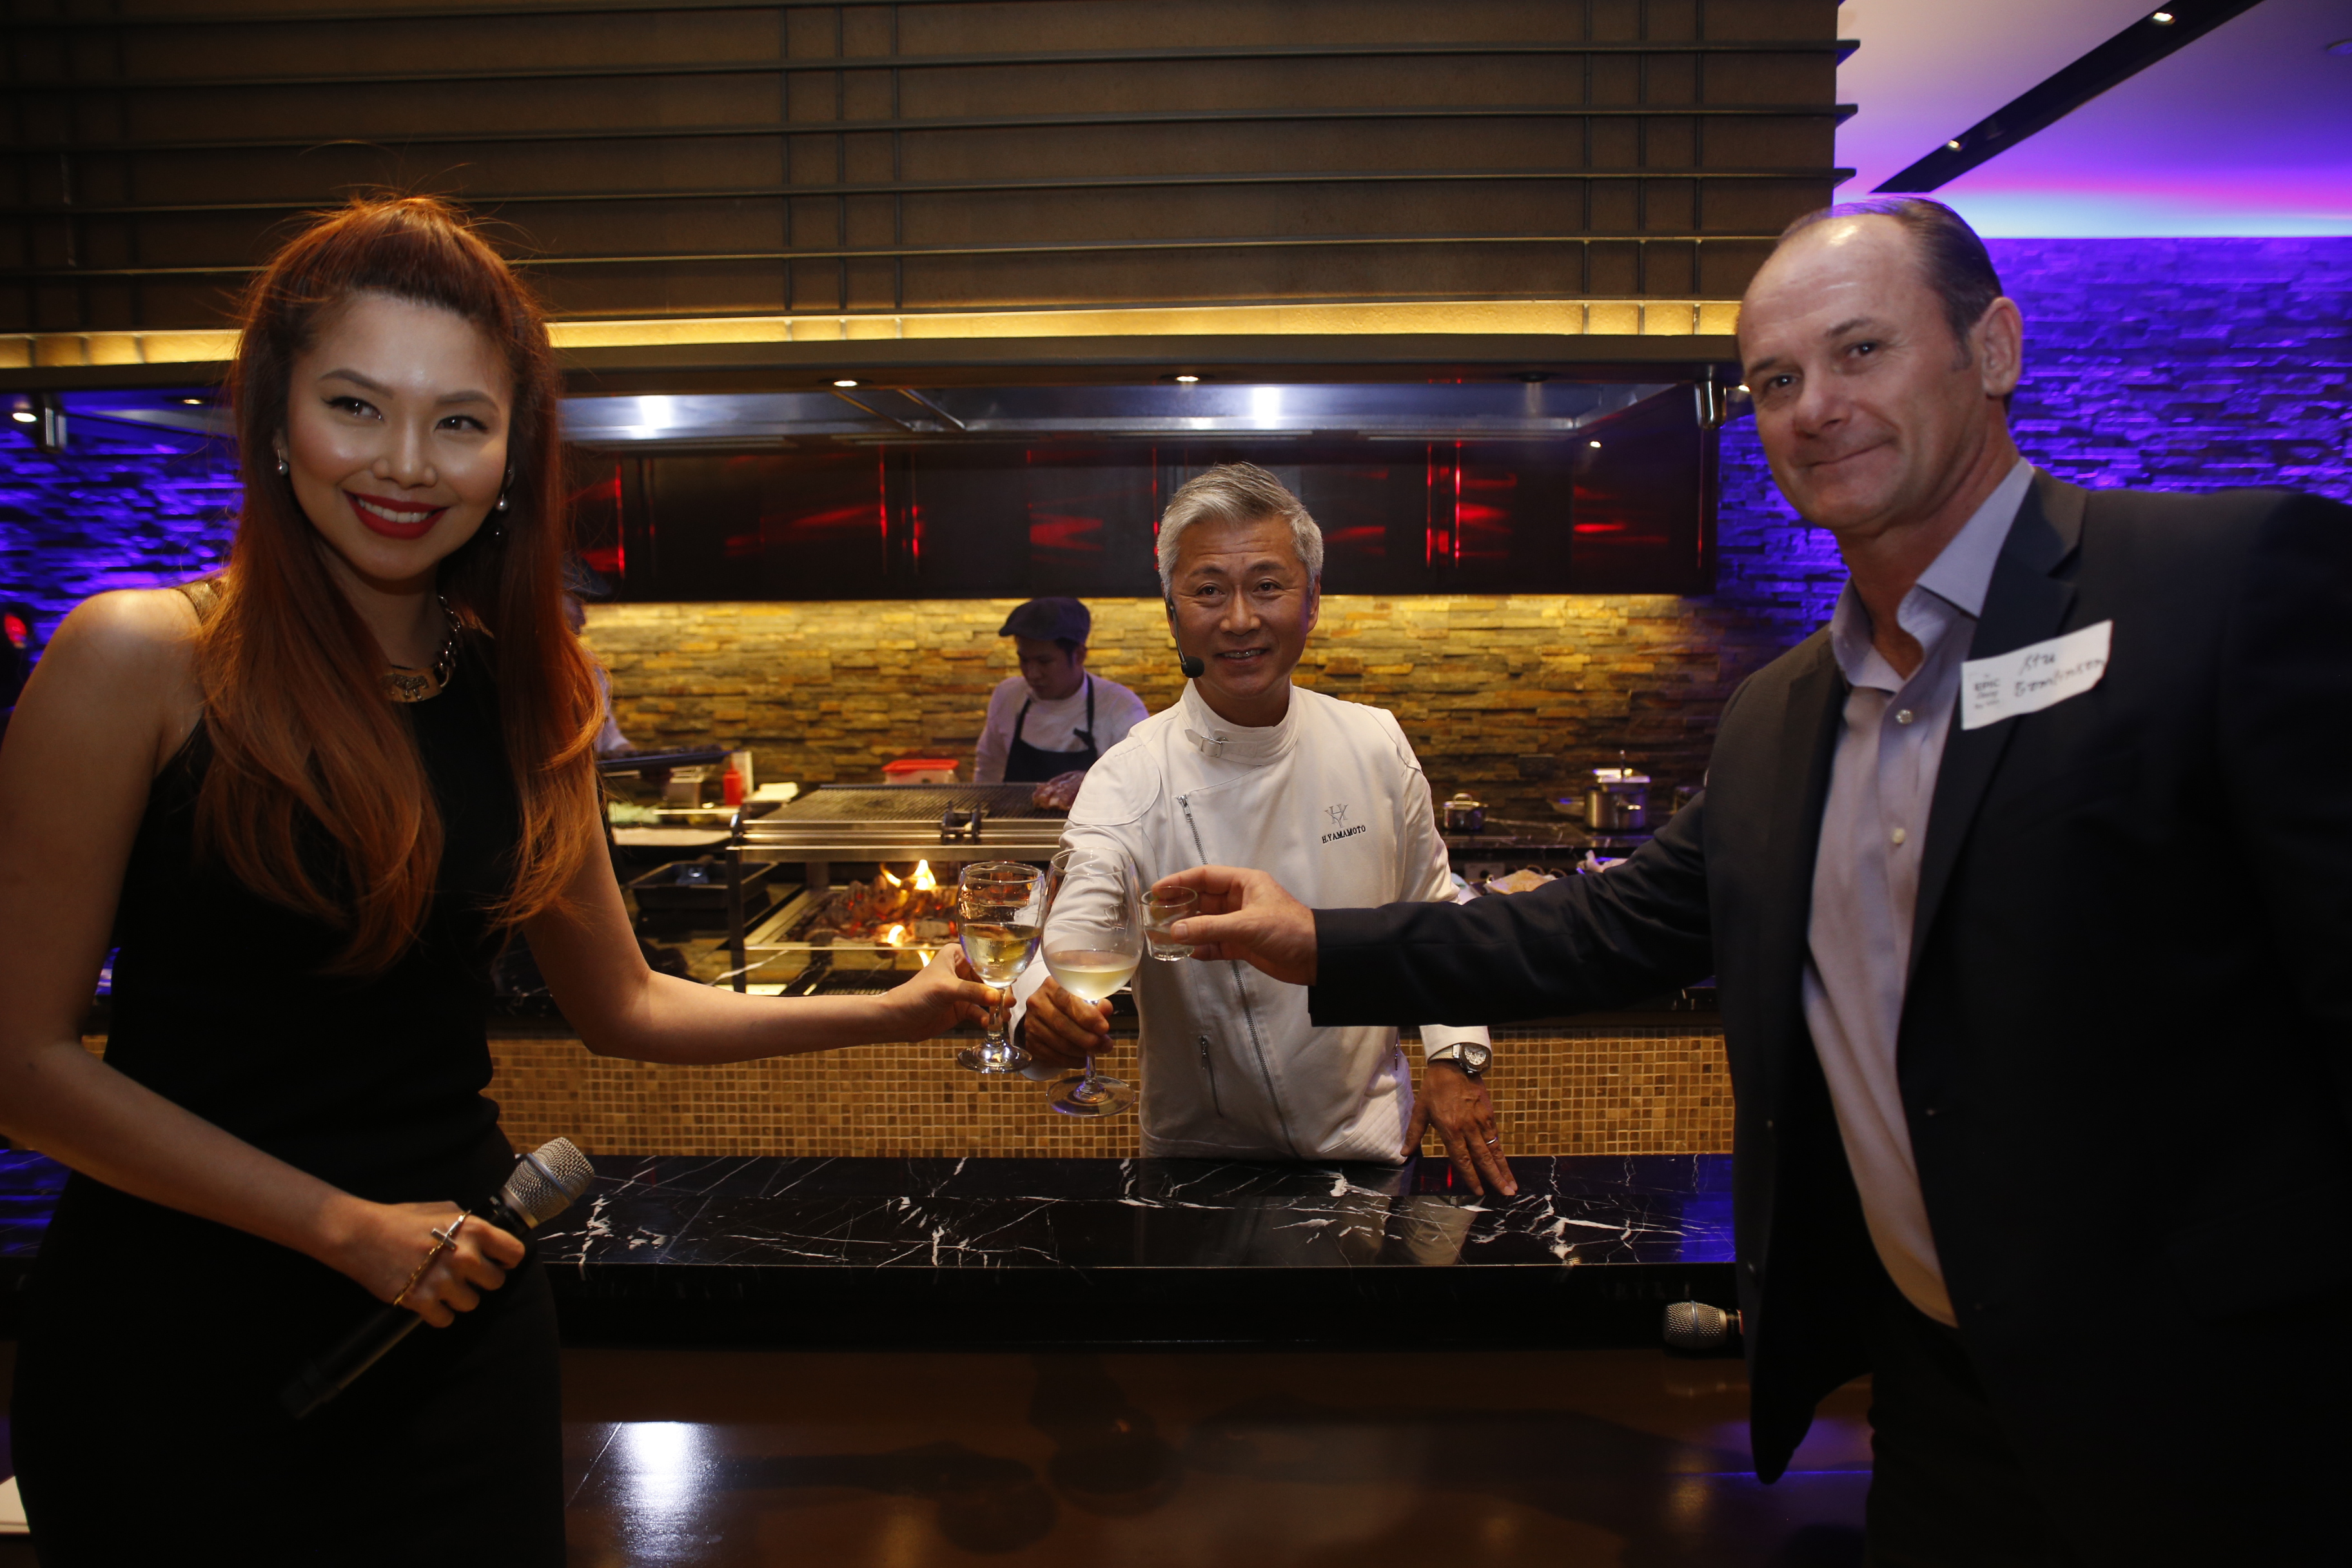 At the ceremonial toast during the formal launch of 'Epic Dining by Visa,' from left: event host Bianca Valerio, Chef Hide Yamamoto, and Visa country manager for the Philippines and Guam Stuart Tomlinson